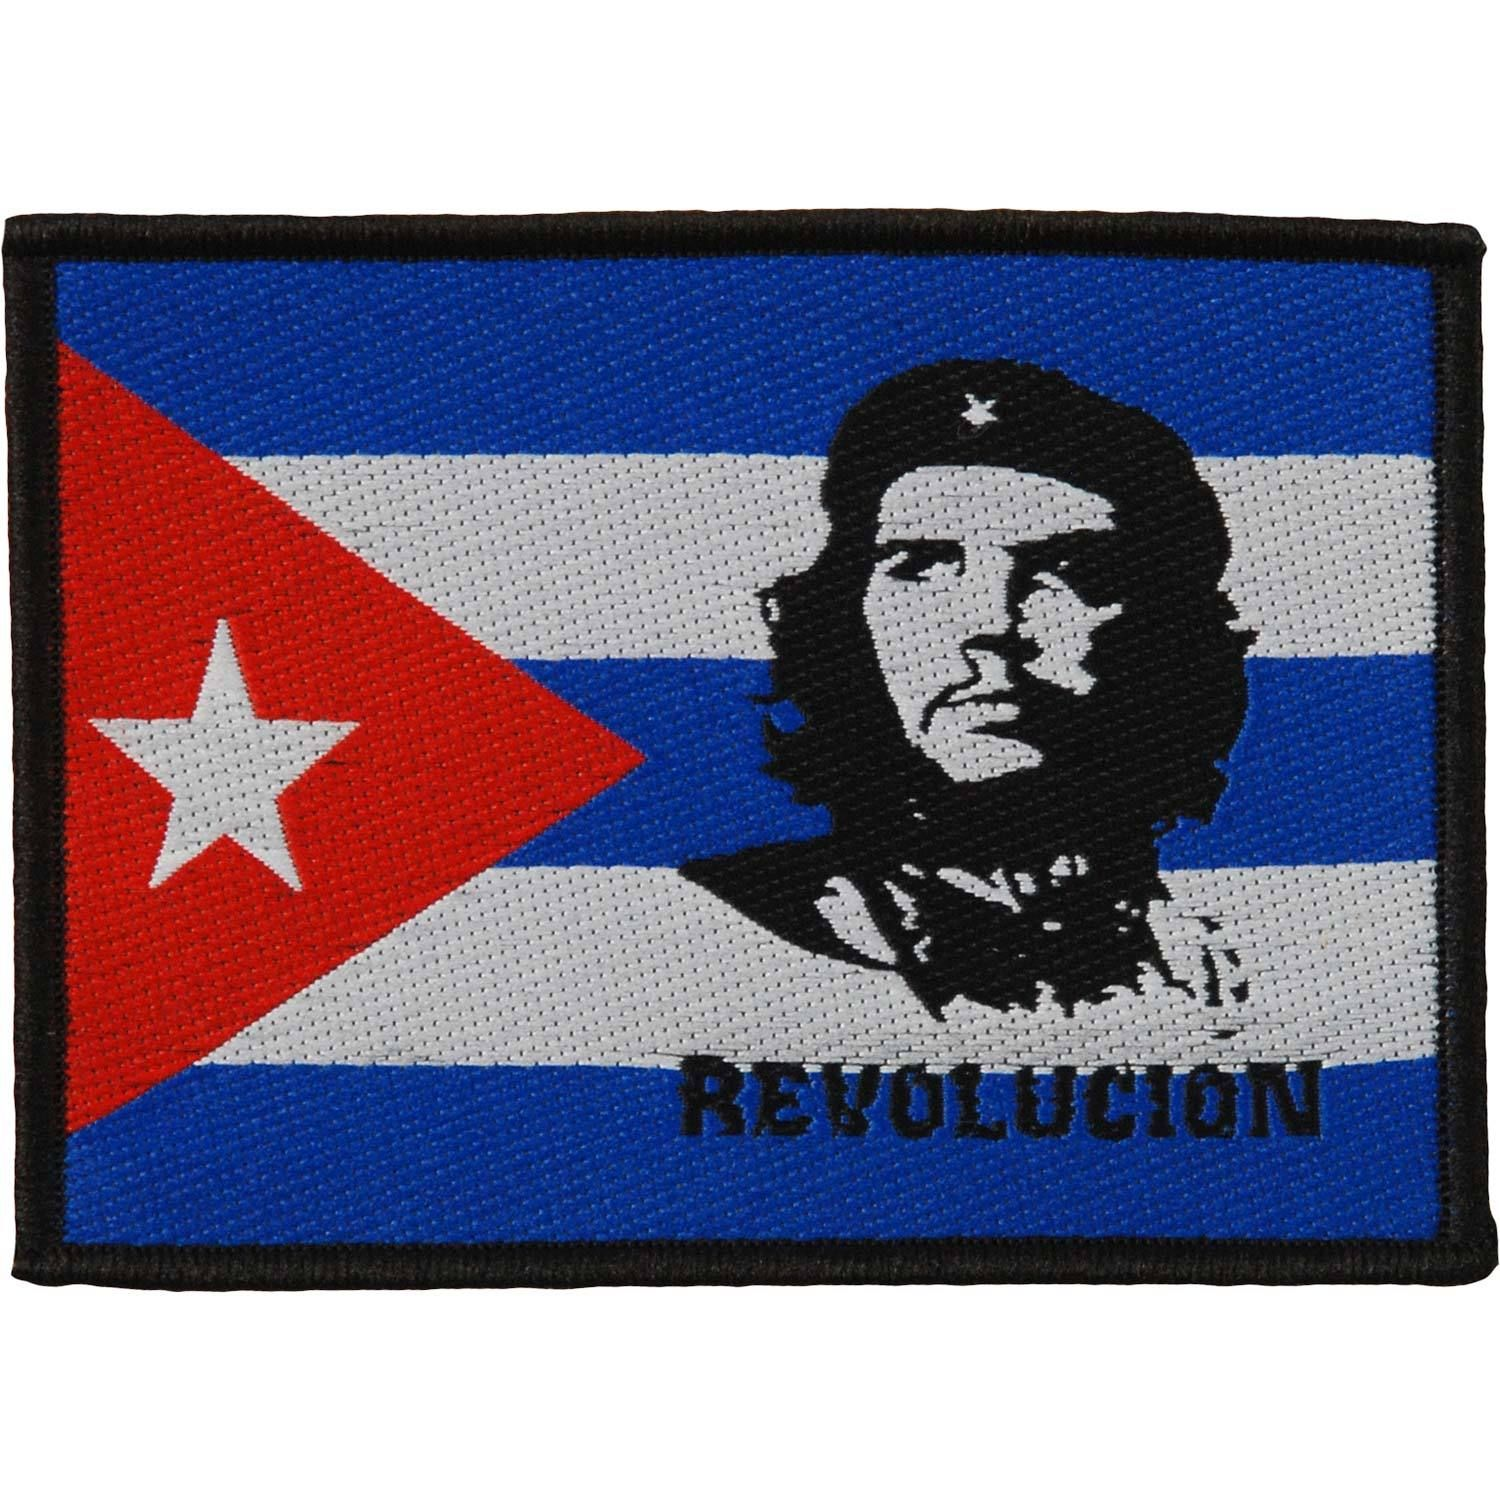 Revolution Woven Patch In 2020 Flag Art Woven Patches